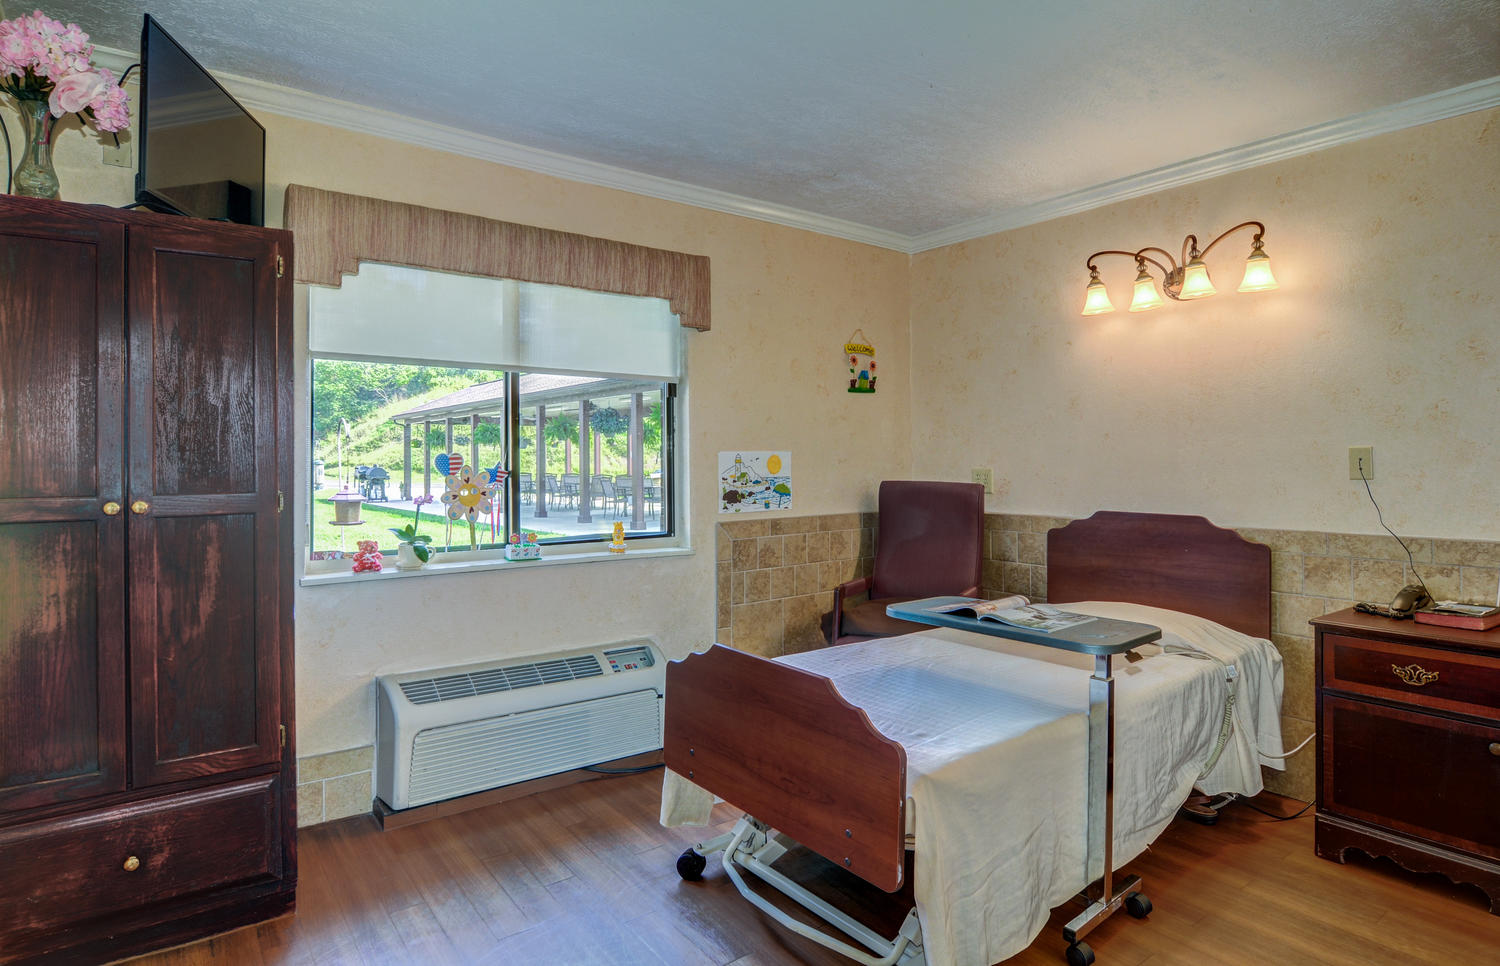 Stonerise Bridgeport patient room with children's art, small gifts and TV